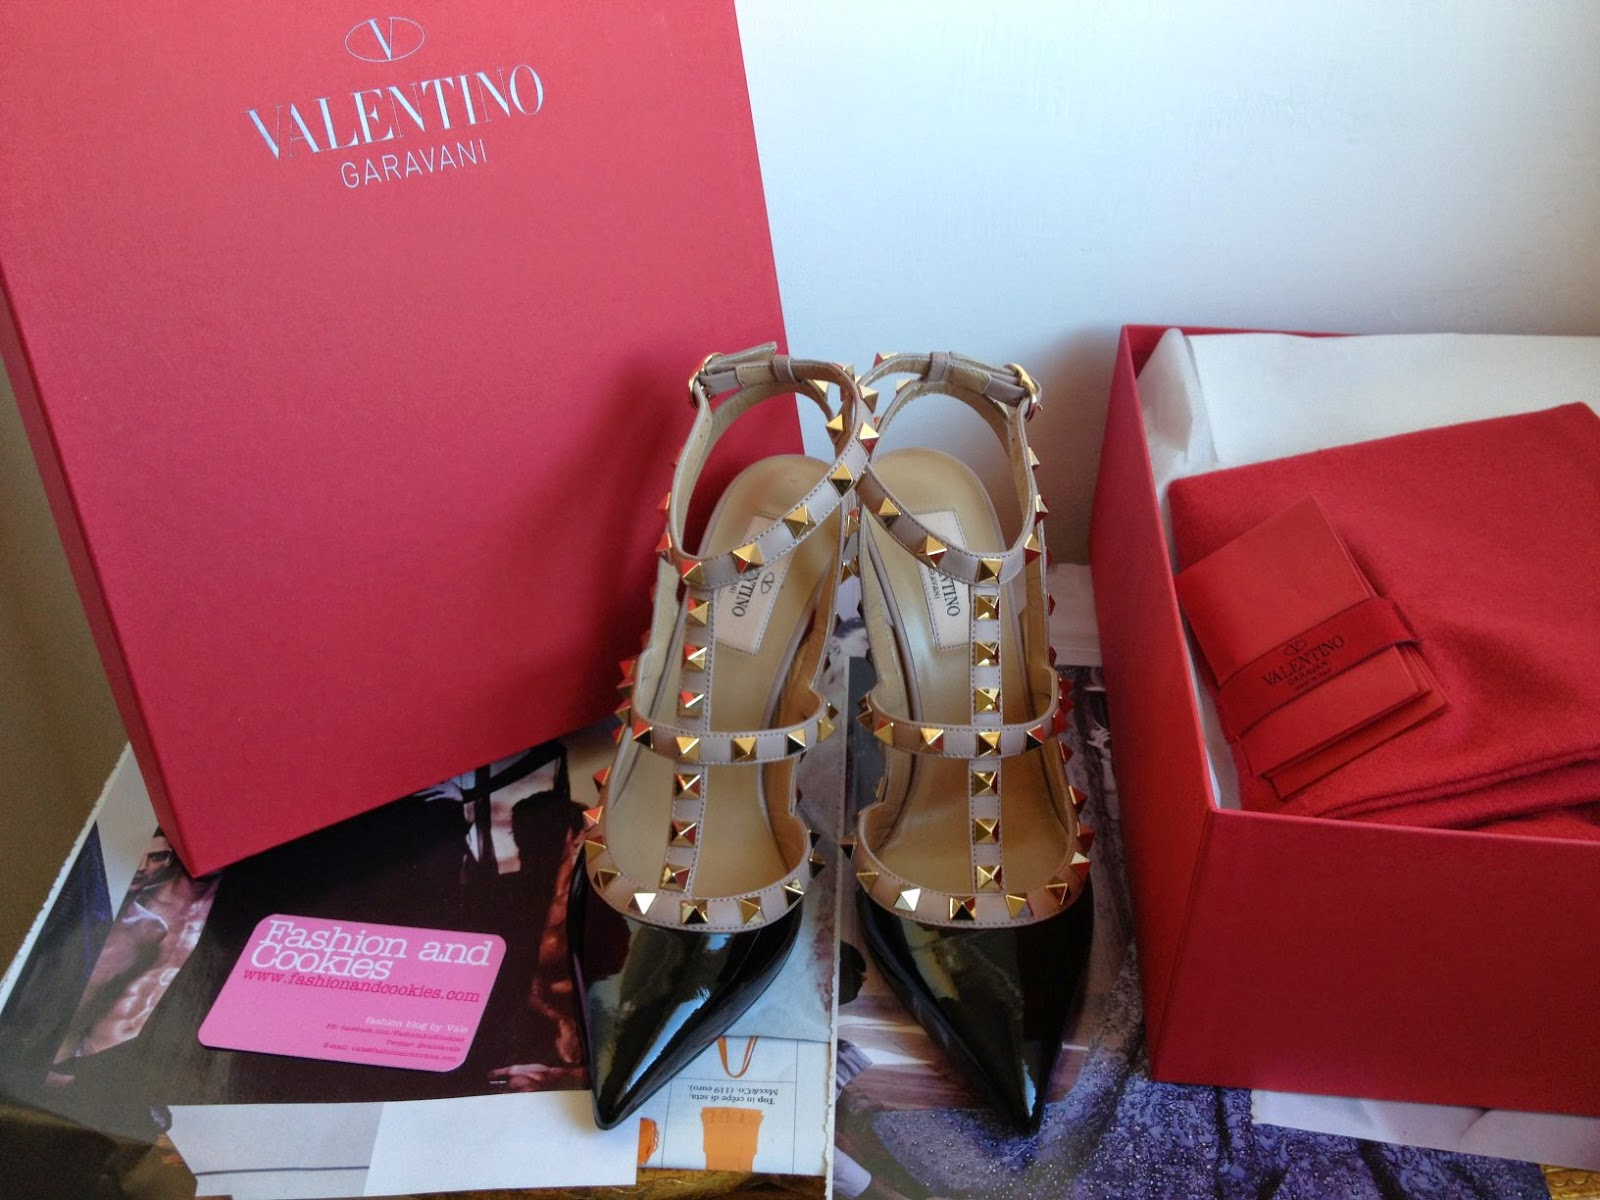 Valentino Rockstud pumps, Valentino rockstud sale, Valentino Rockstud review, Valentino Rockstud patent leather, Fashion and Cookies fashion blog, fashion blogger